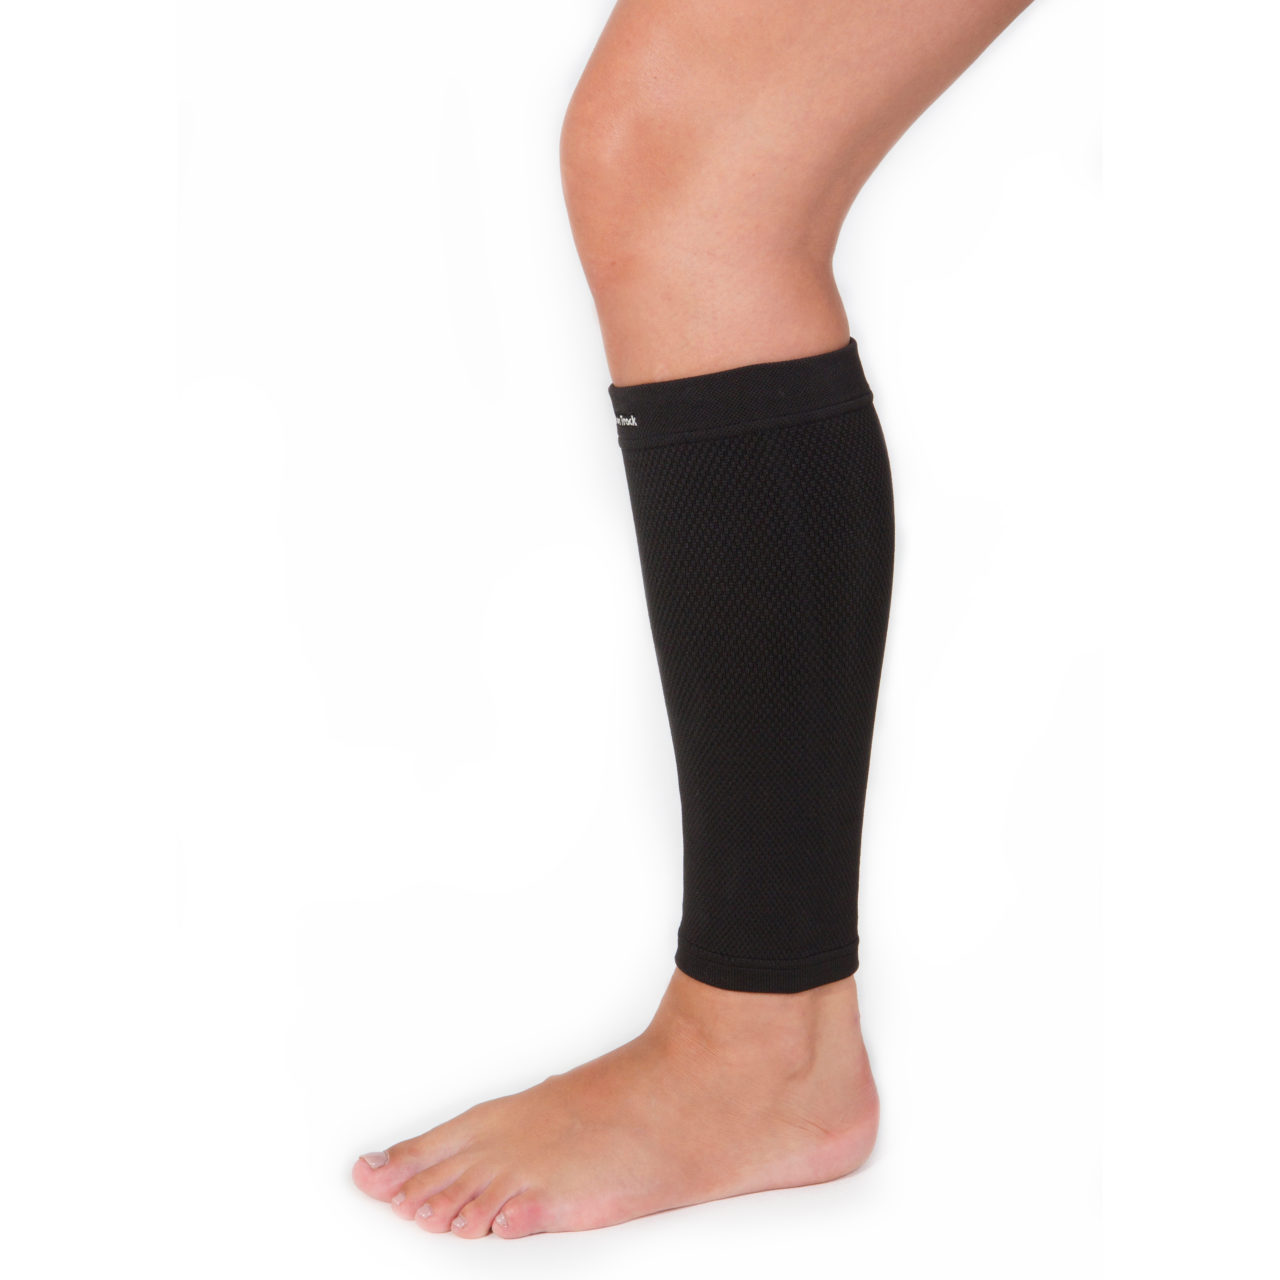 31742383db New Physio Calf Brace $31.00 The Back on Track + Physio Calf Brace ...